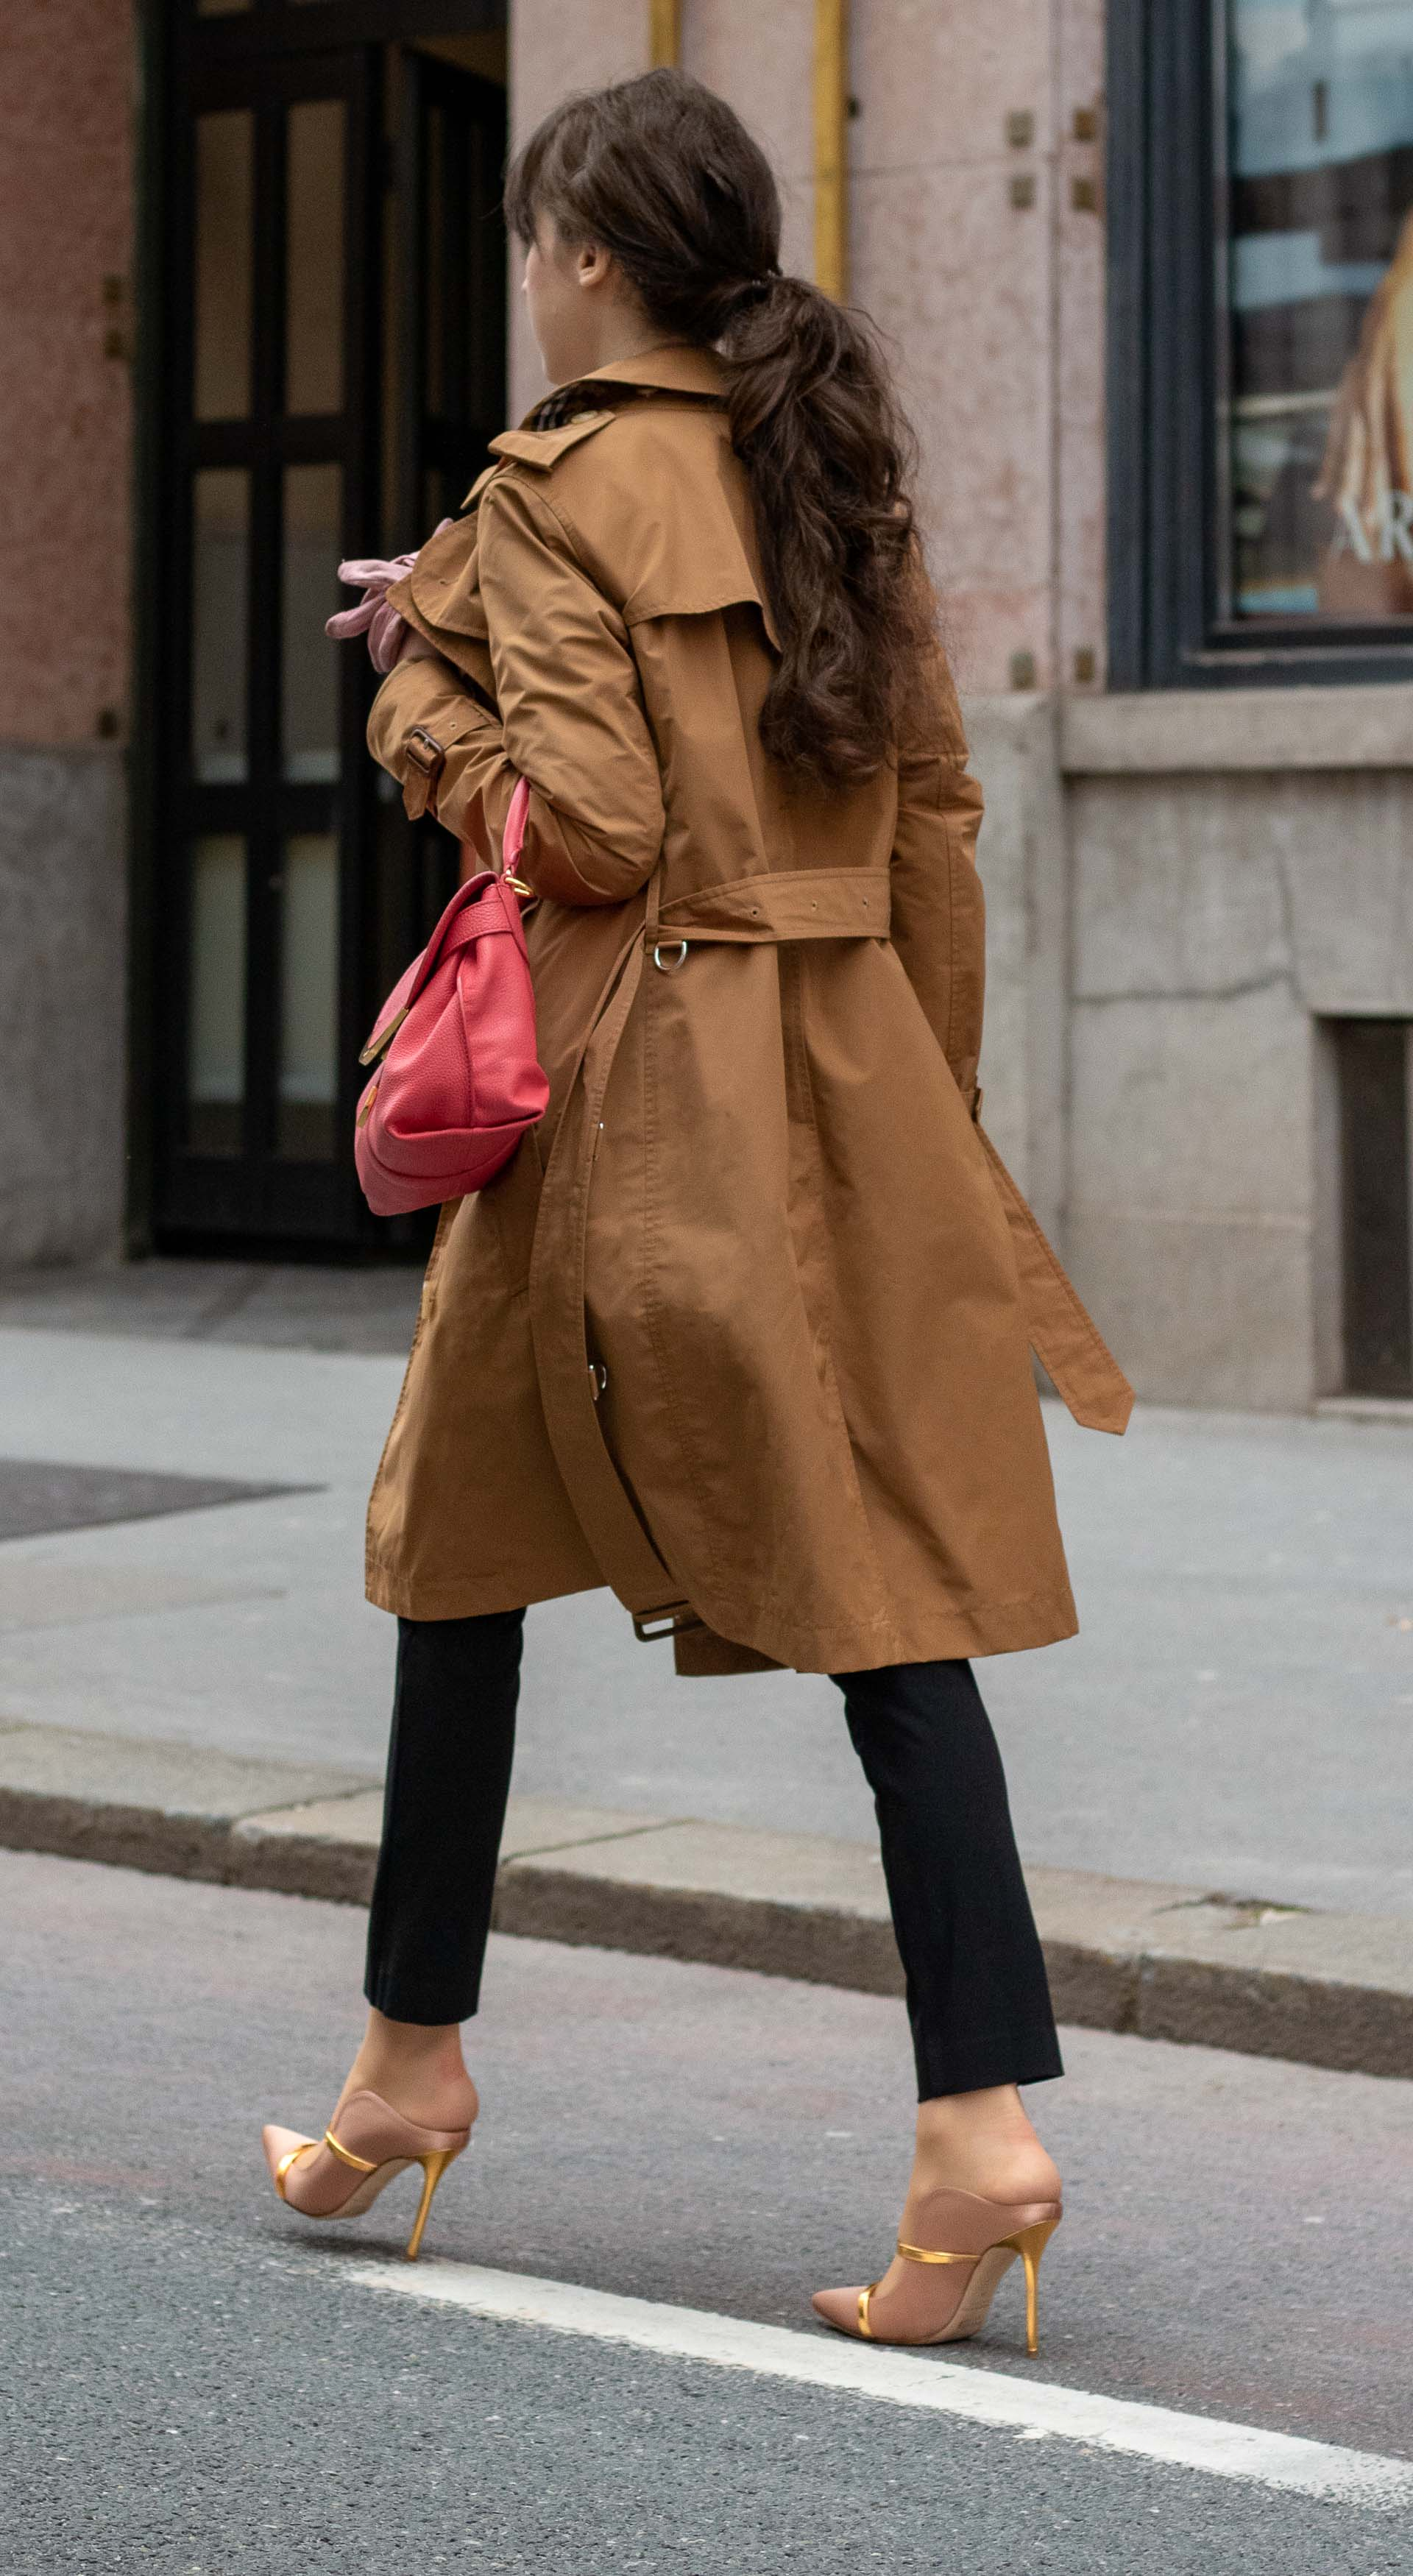 Must follow Slovenian Fashion Blogger Veronika Lipar of Brunette from Wall Street wearing camel Burberry trench coat black slacks blush Malone Souliers mules pink top handle bag low ponytail going to work